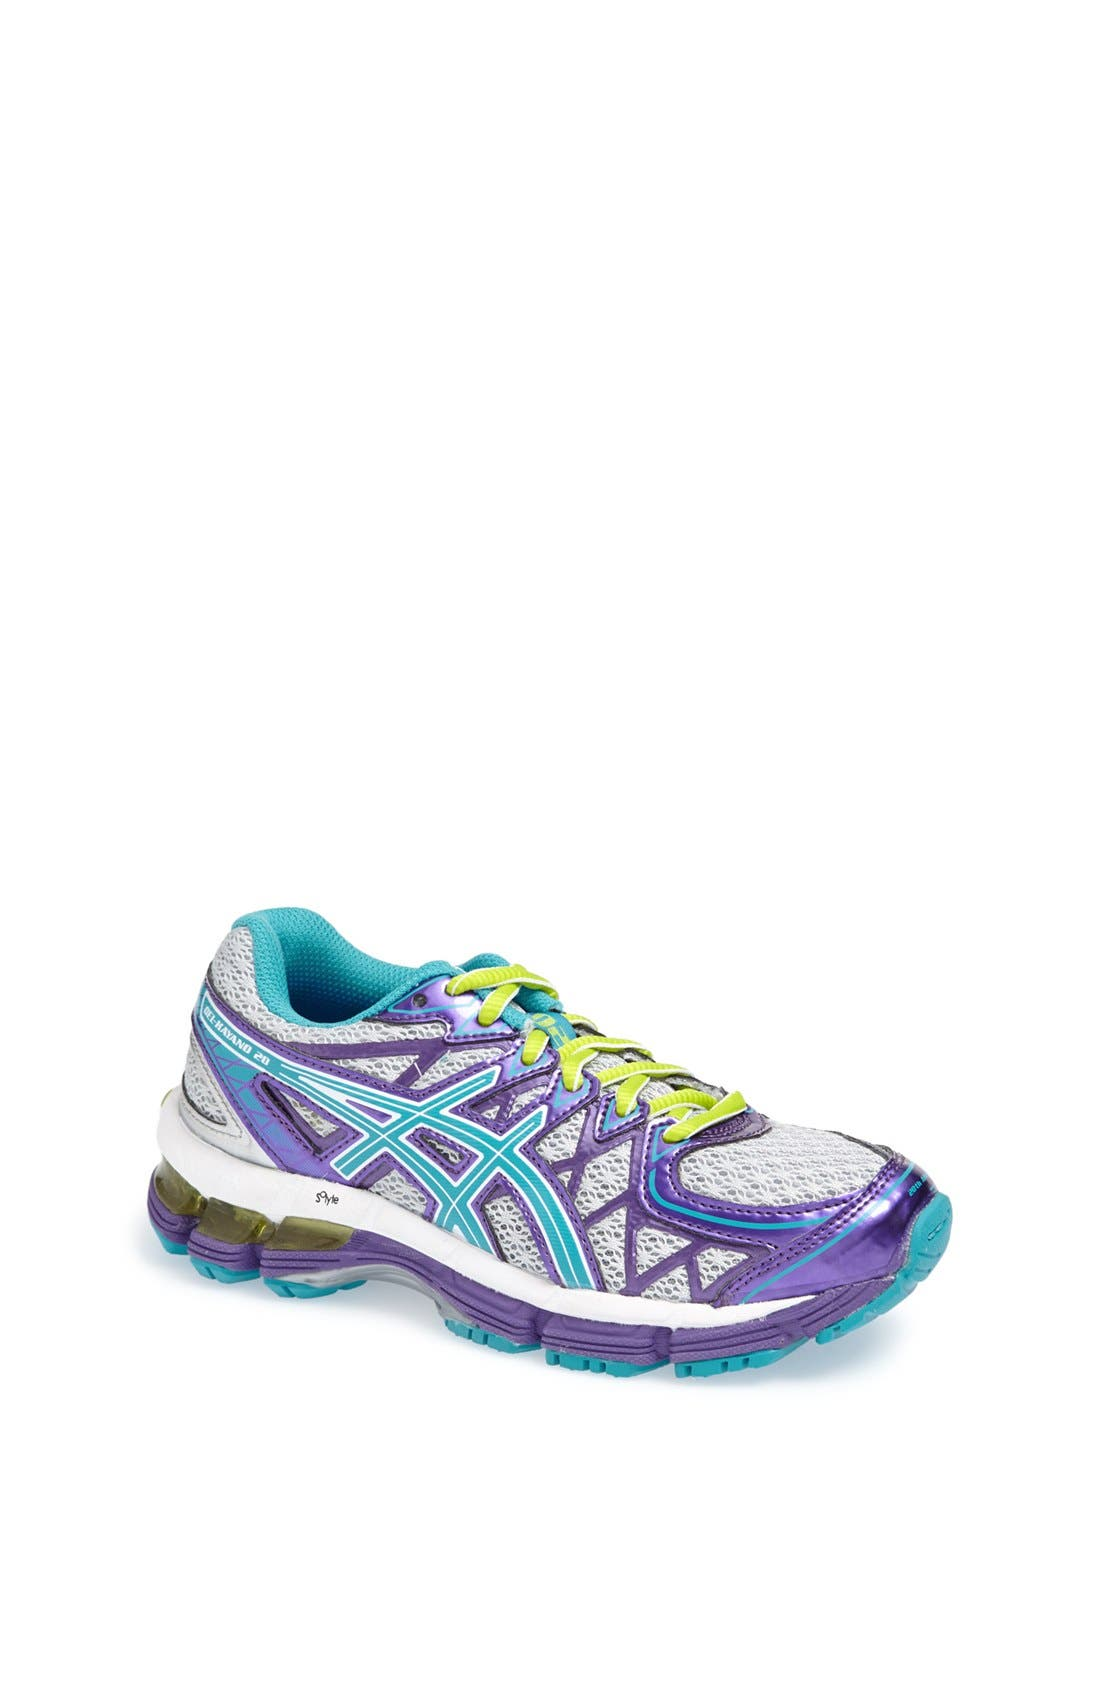 Main Image - ASICS® 'Gel-Kayano® 20' Running Shoe (Little Kid & Big Kid)